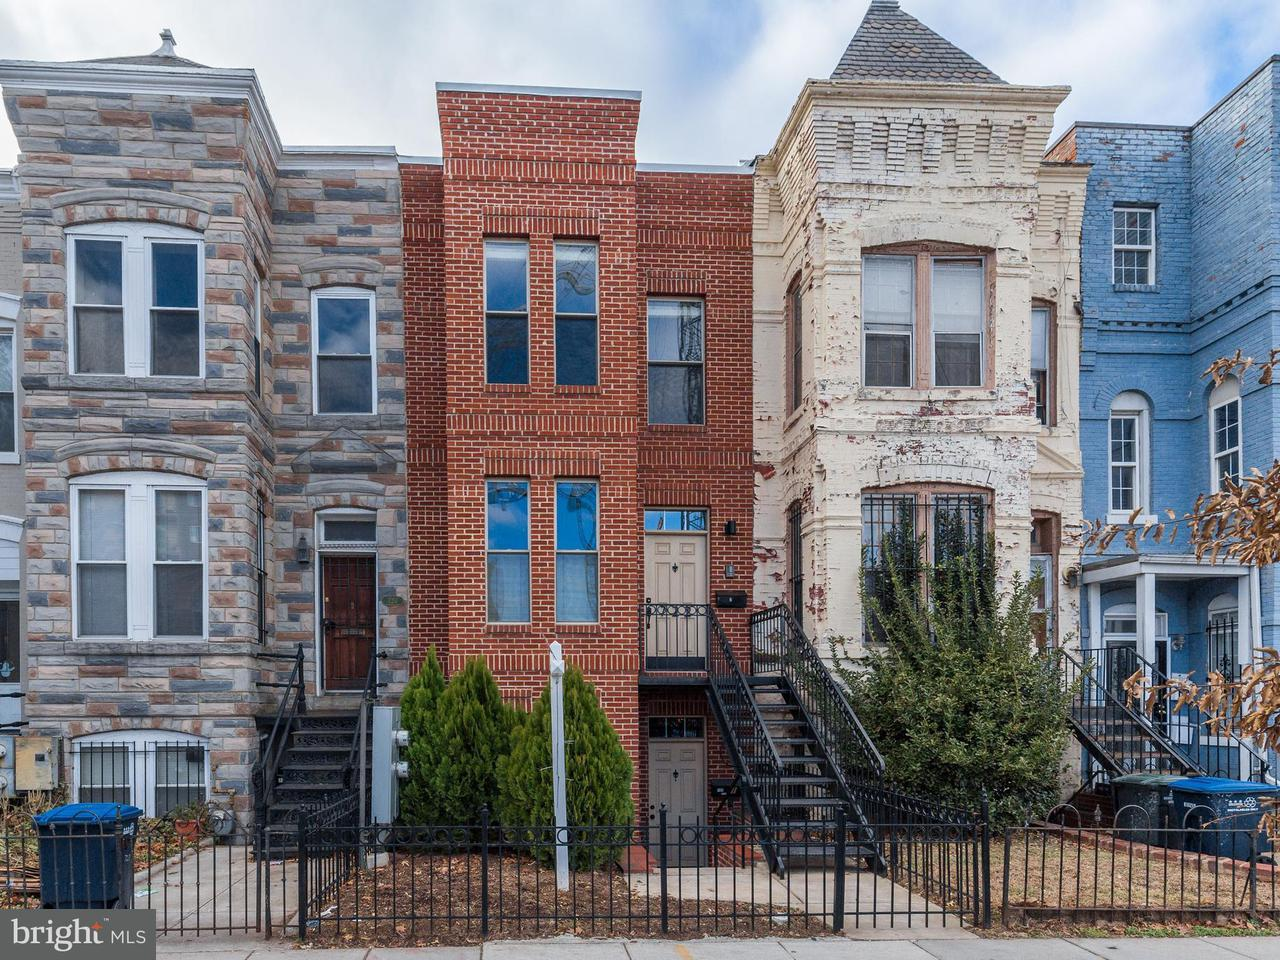 Townhouse for Sale at 722 8th St Ne 722 8th St Ne Washington, District Of Columbia 20002 United States